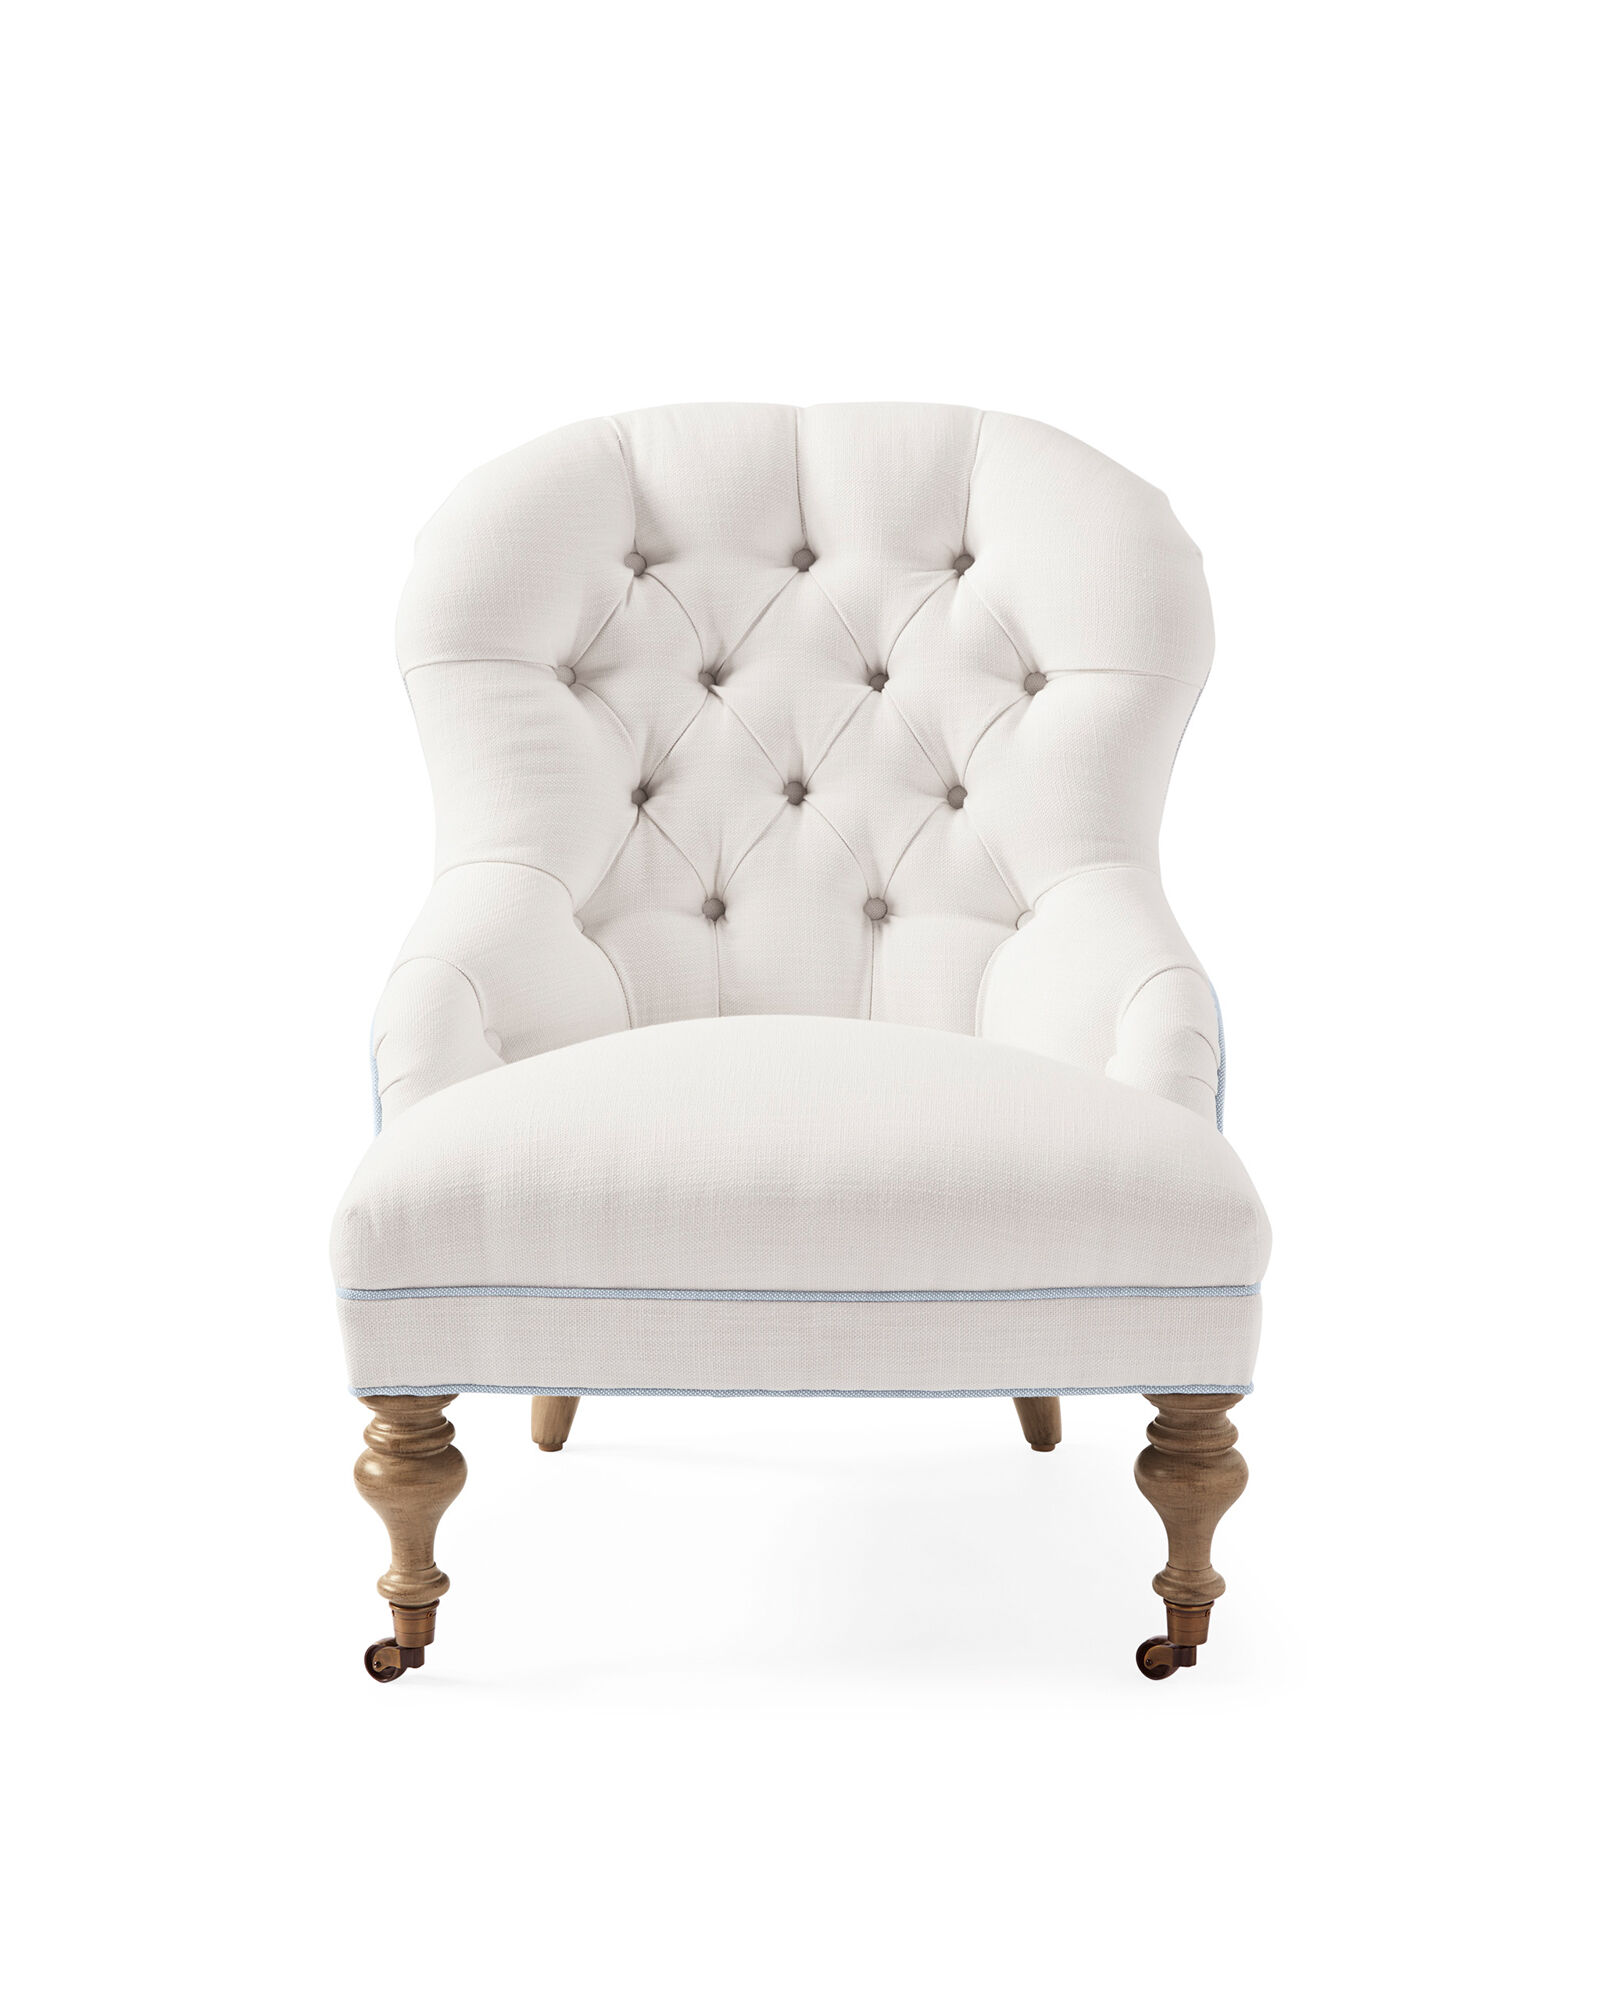 Piccadilly Chair – Perennials® White Basketweave with Coastal Blue Piping,